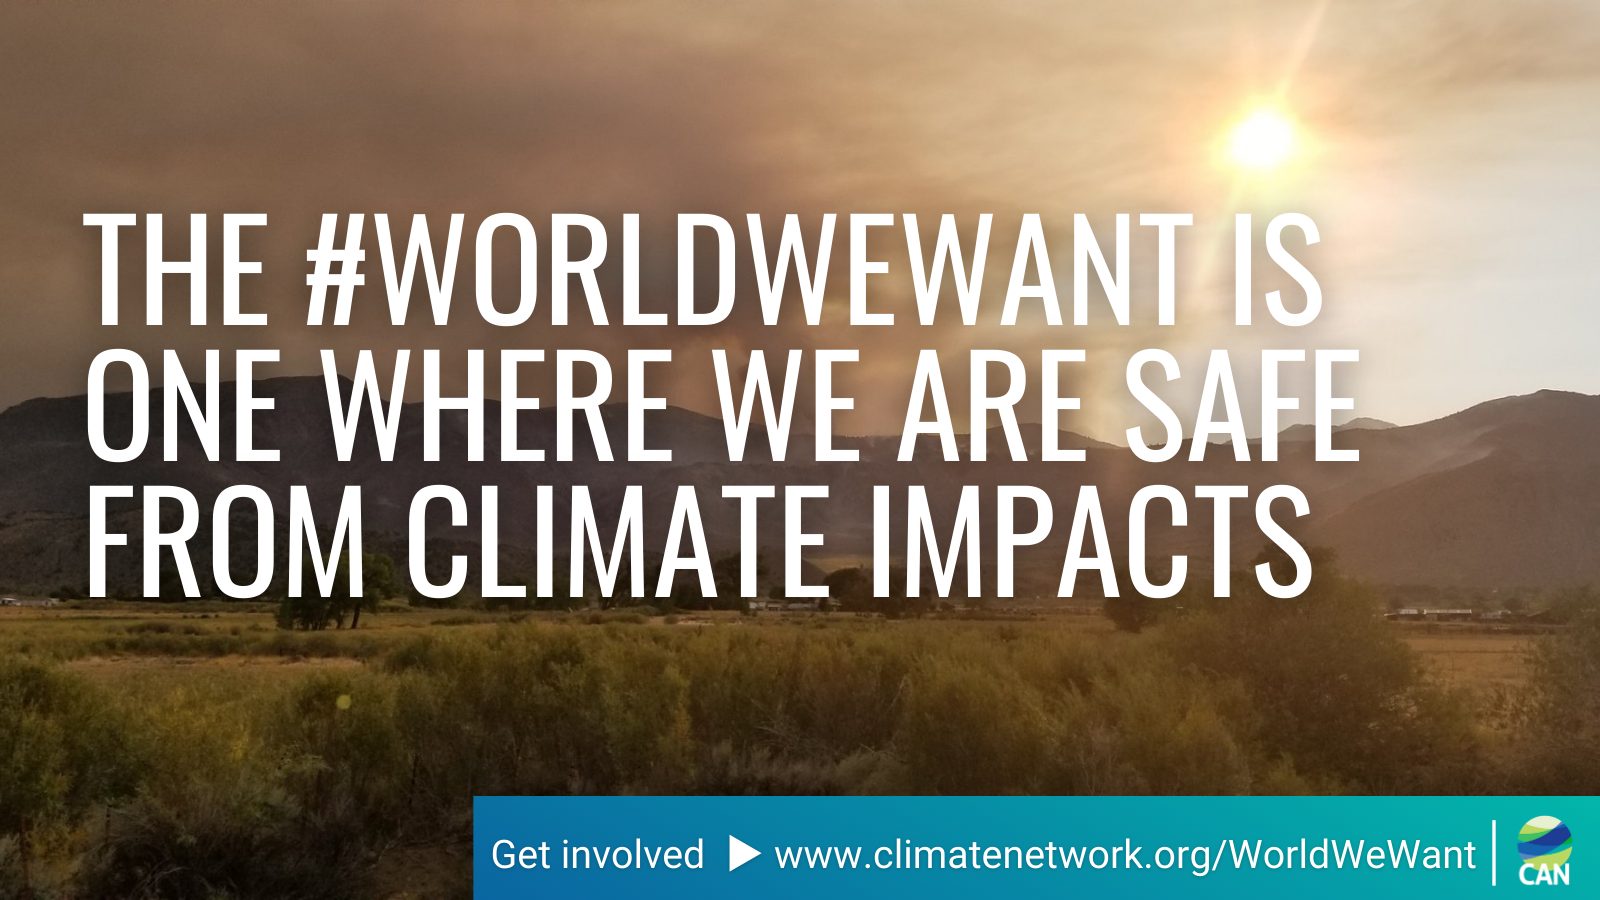 #WorldWeWant Campaign on Climate Impacts